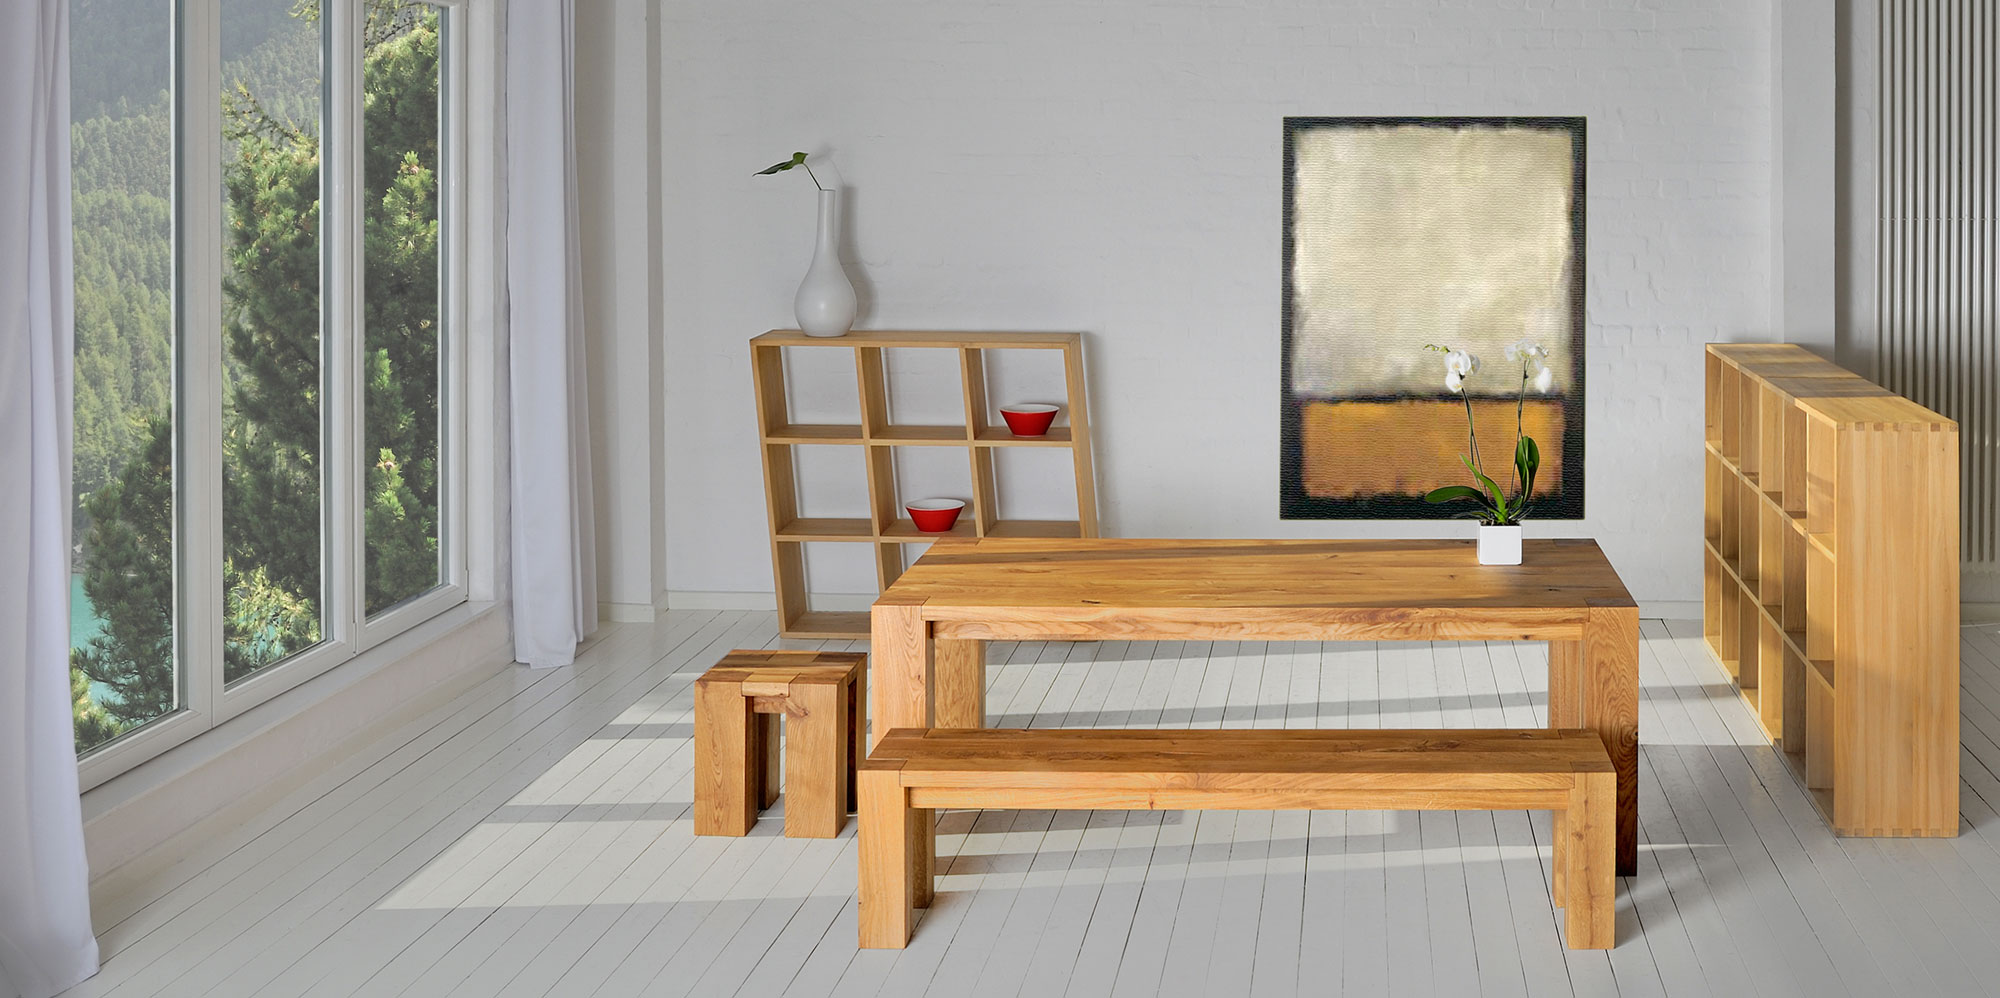 Rustic Solid Wood Bench TAURUS 4 B14X14 4088 custom made in solid wood by vitamin design